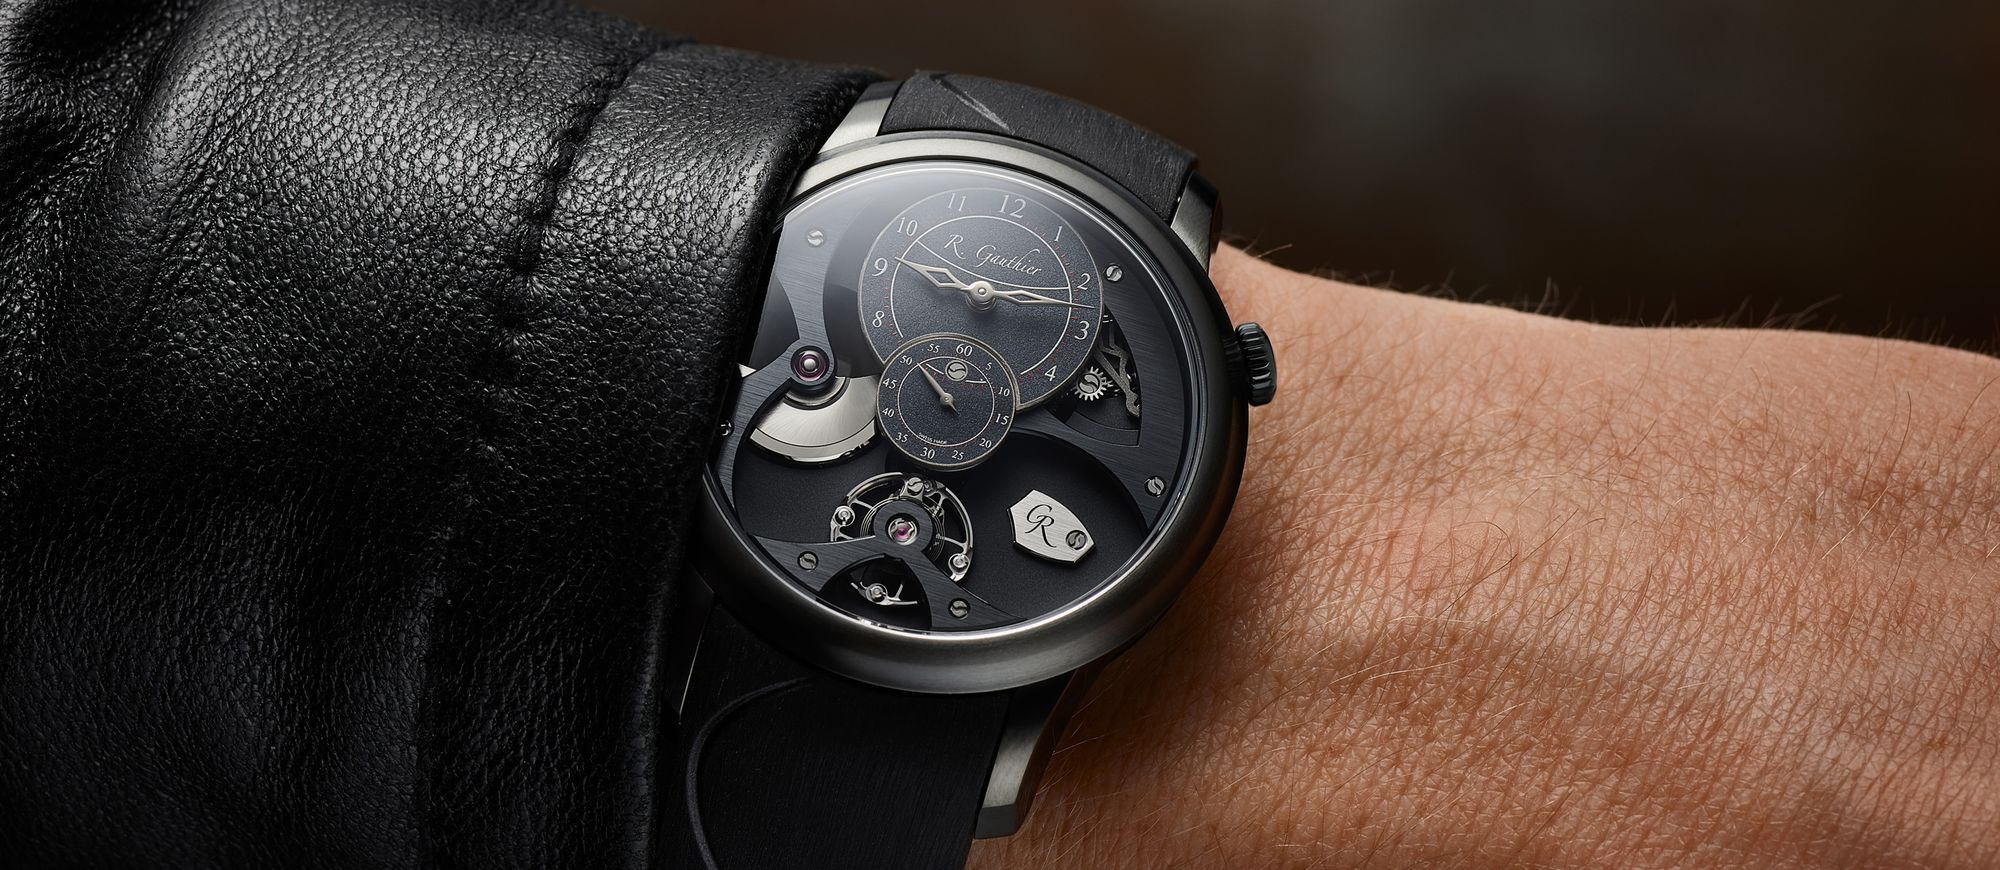 【每週一錶】Romain Gauthier Insight Micro-Rotor Black Titanium:最精緻的運動風味